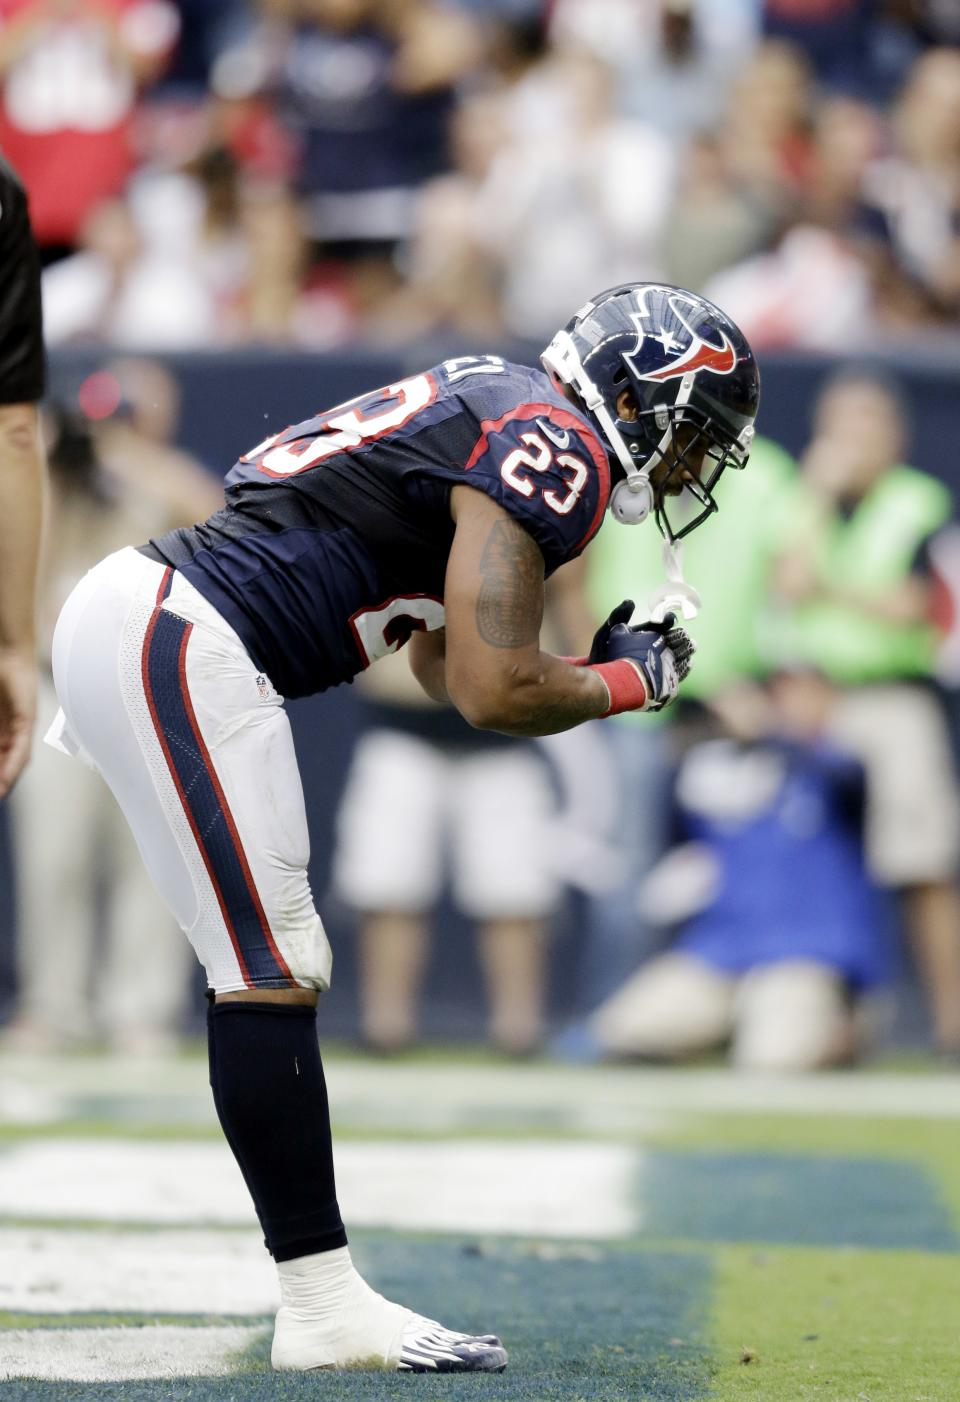 Houston Texans running back Arian Foster bows to the crowd after scoring a touchdown against the Tennessee Titans in the first quarter of an NFL football game Sunday, Sept. 30, 2012, in Houston. (AP Photo/Eric Gay)